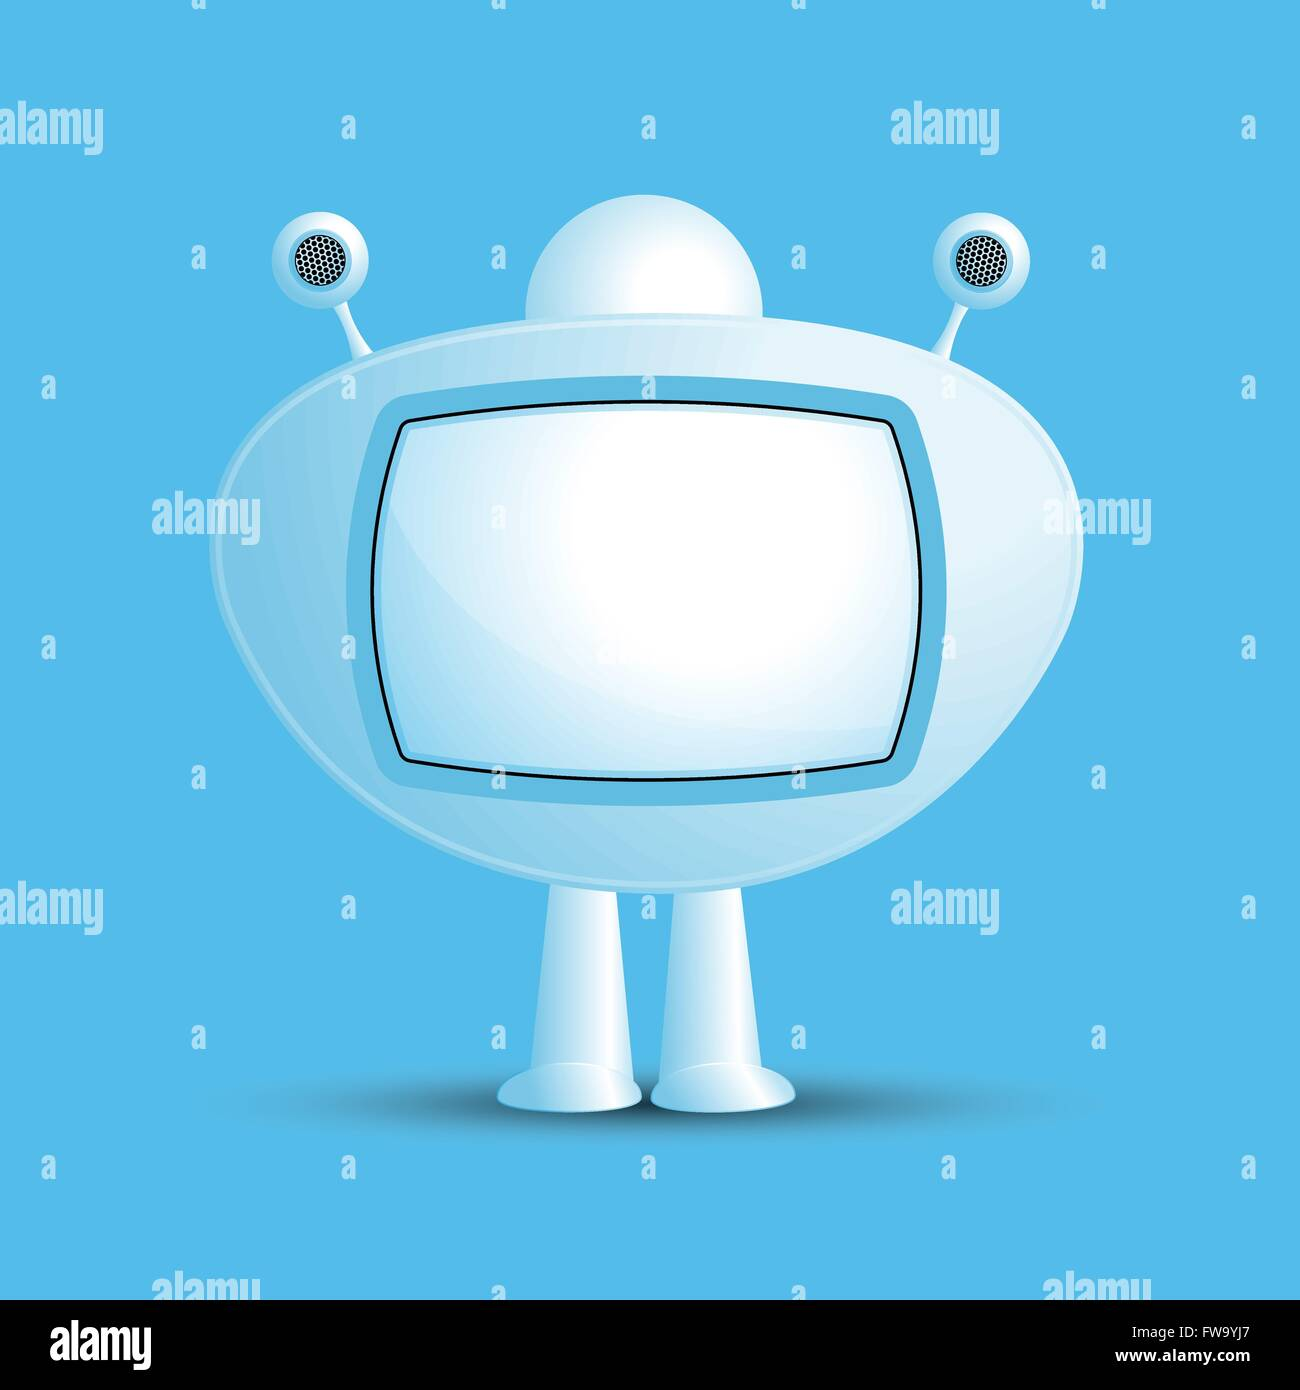 Speech bubbles robots television for text.  A vector illustration. Stock Vector